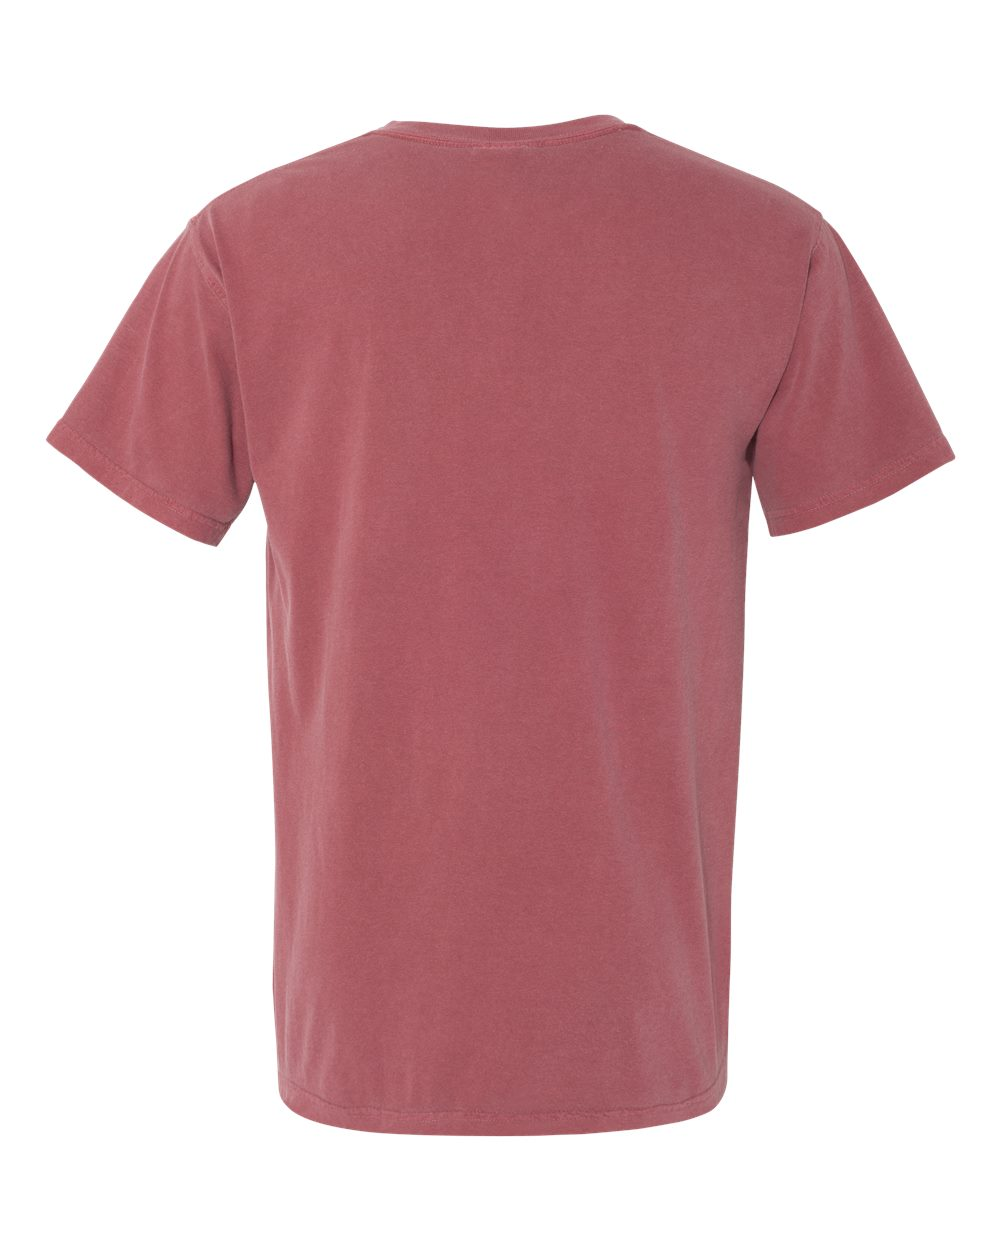 Comfort-Colors-Men-039-s-6-1-oz-Garment-Dyed-Pocket-T-Shirt-6030CC-S-3XL thumbnail 16